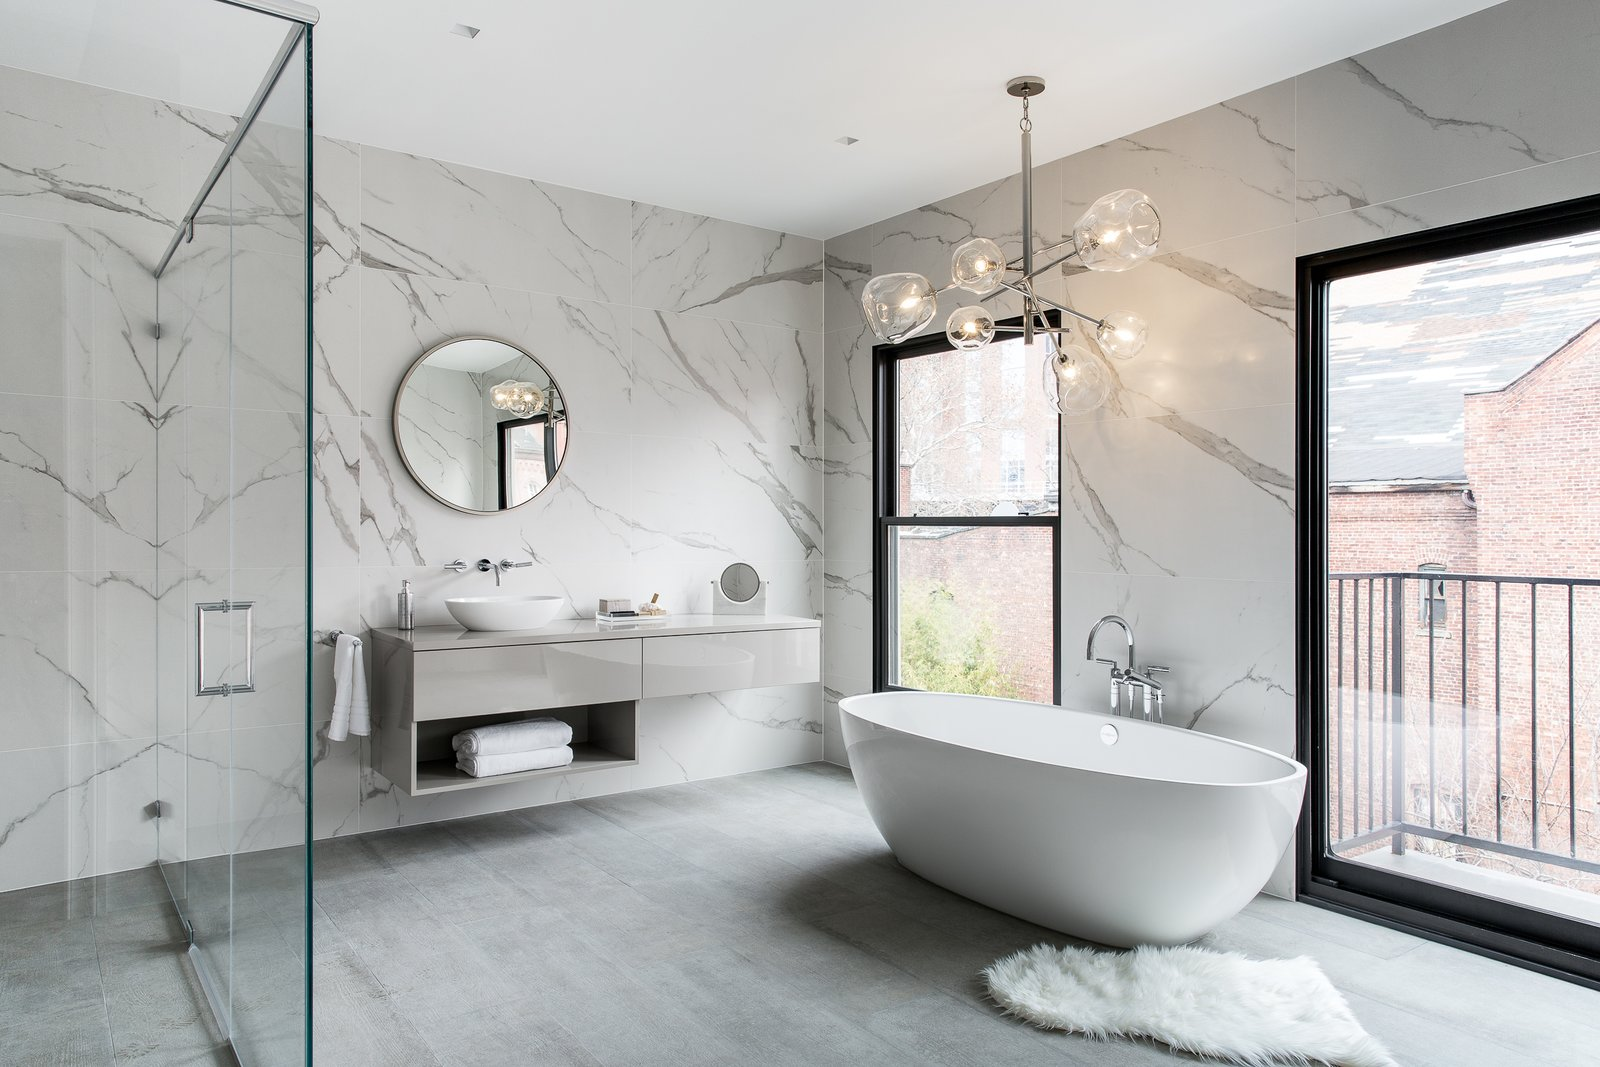 Bath, Porcelain Tile, Full, Soaking, Vessel, Wood, Enclosed, Ceiling, Recessed, Porcelain Tile, Marble, and Freestanding  Best Bath Wood Recessed Full Marble Photos from Boerum Hill Brownstone